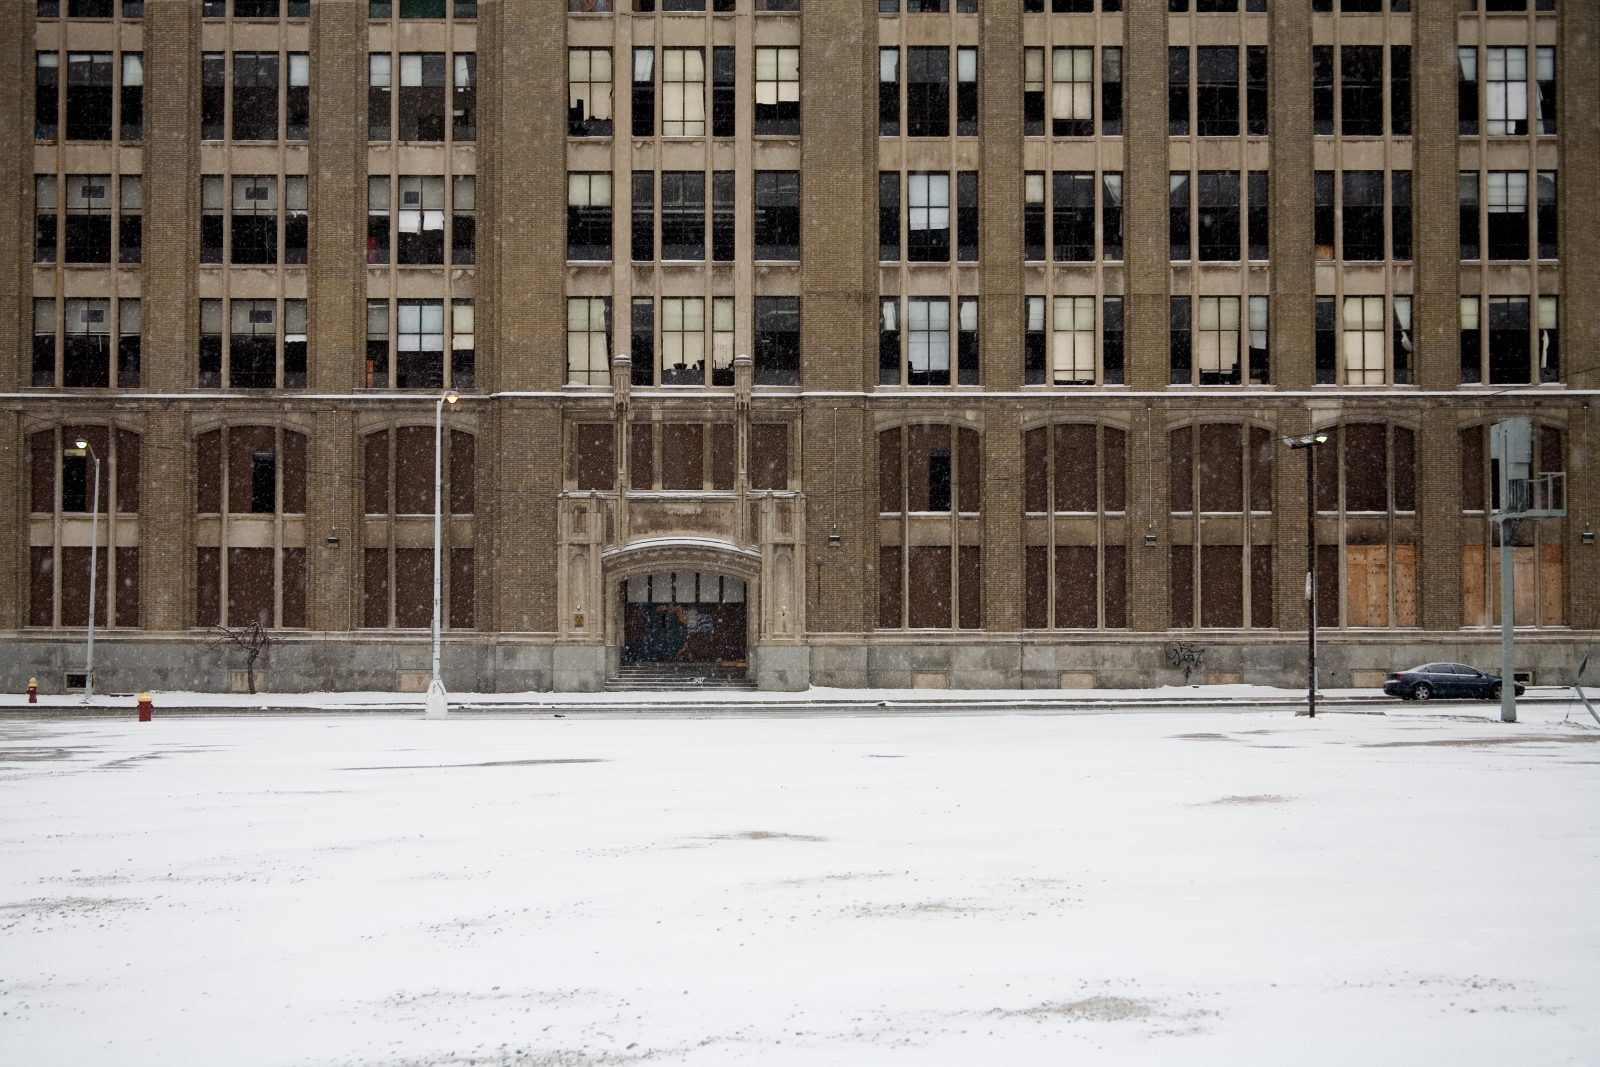 Cass Tech High School. Abandoned in winter. Detroit, Michigan.